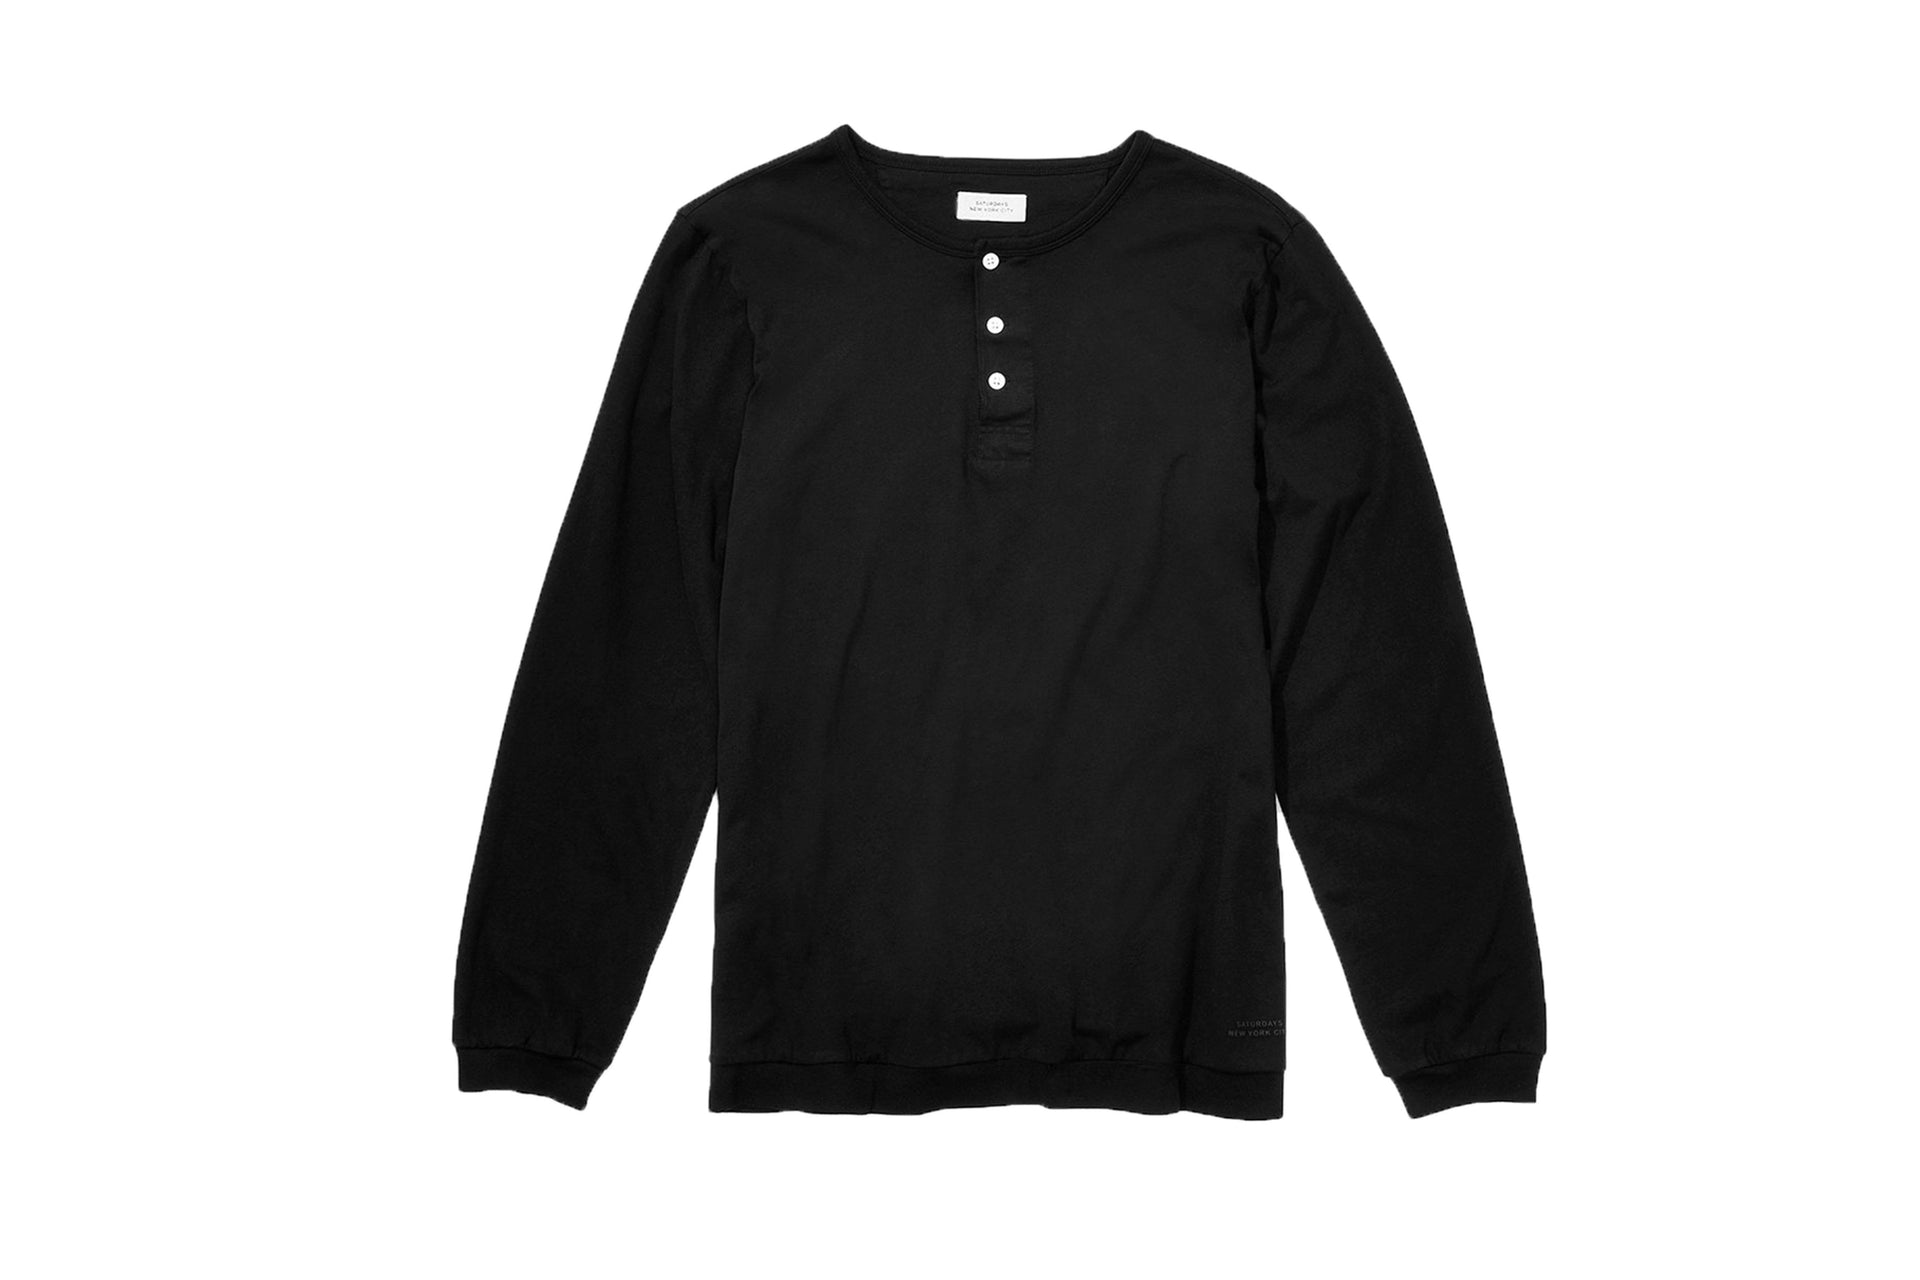 MITCH PIMA HENLEY L/S TEE MENS SOFTGOODS SATURDAYS NYC